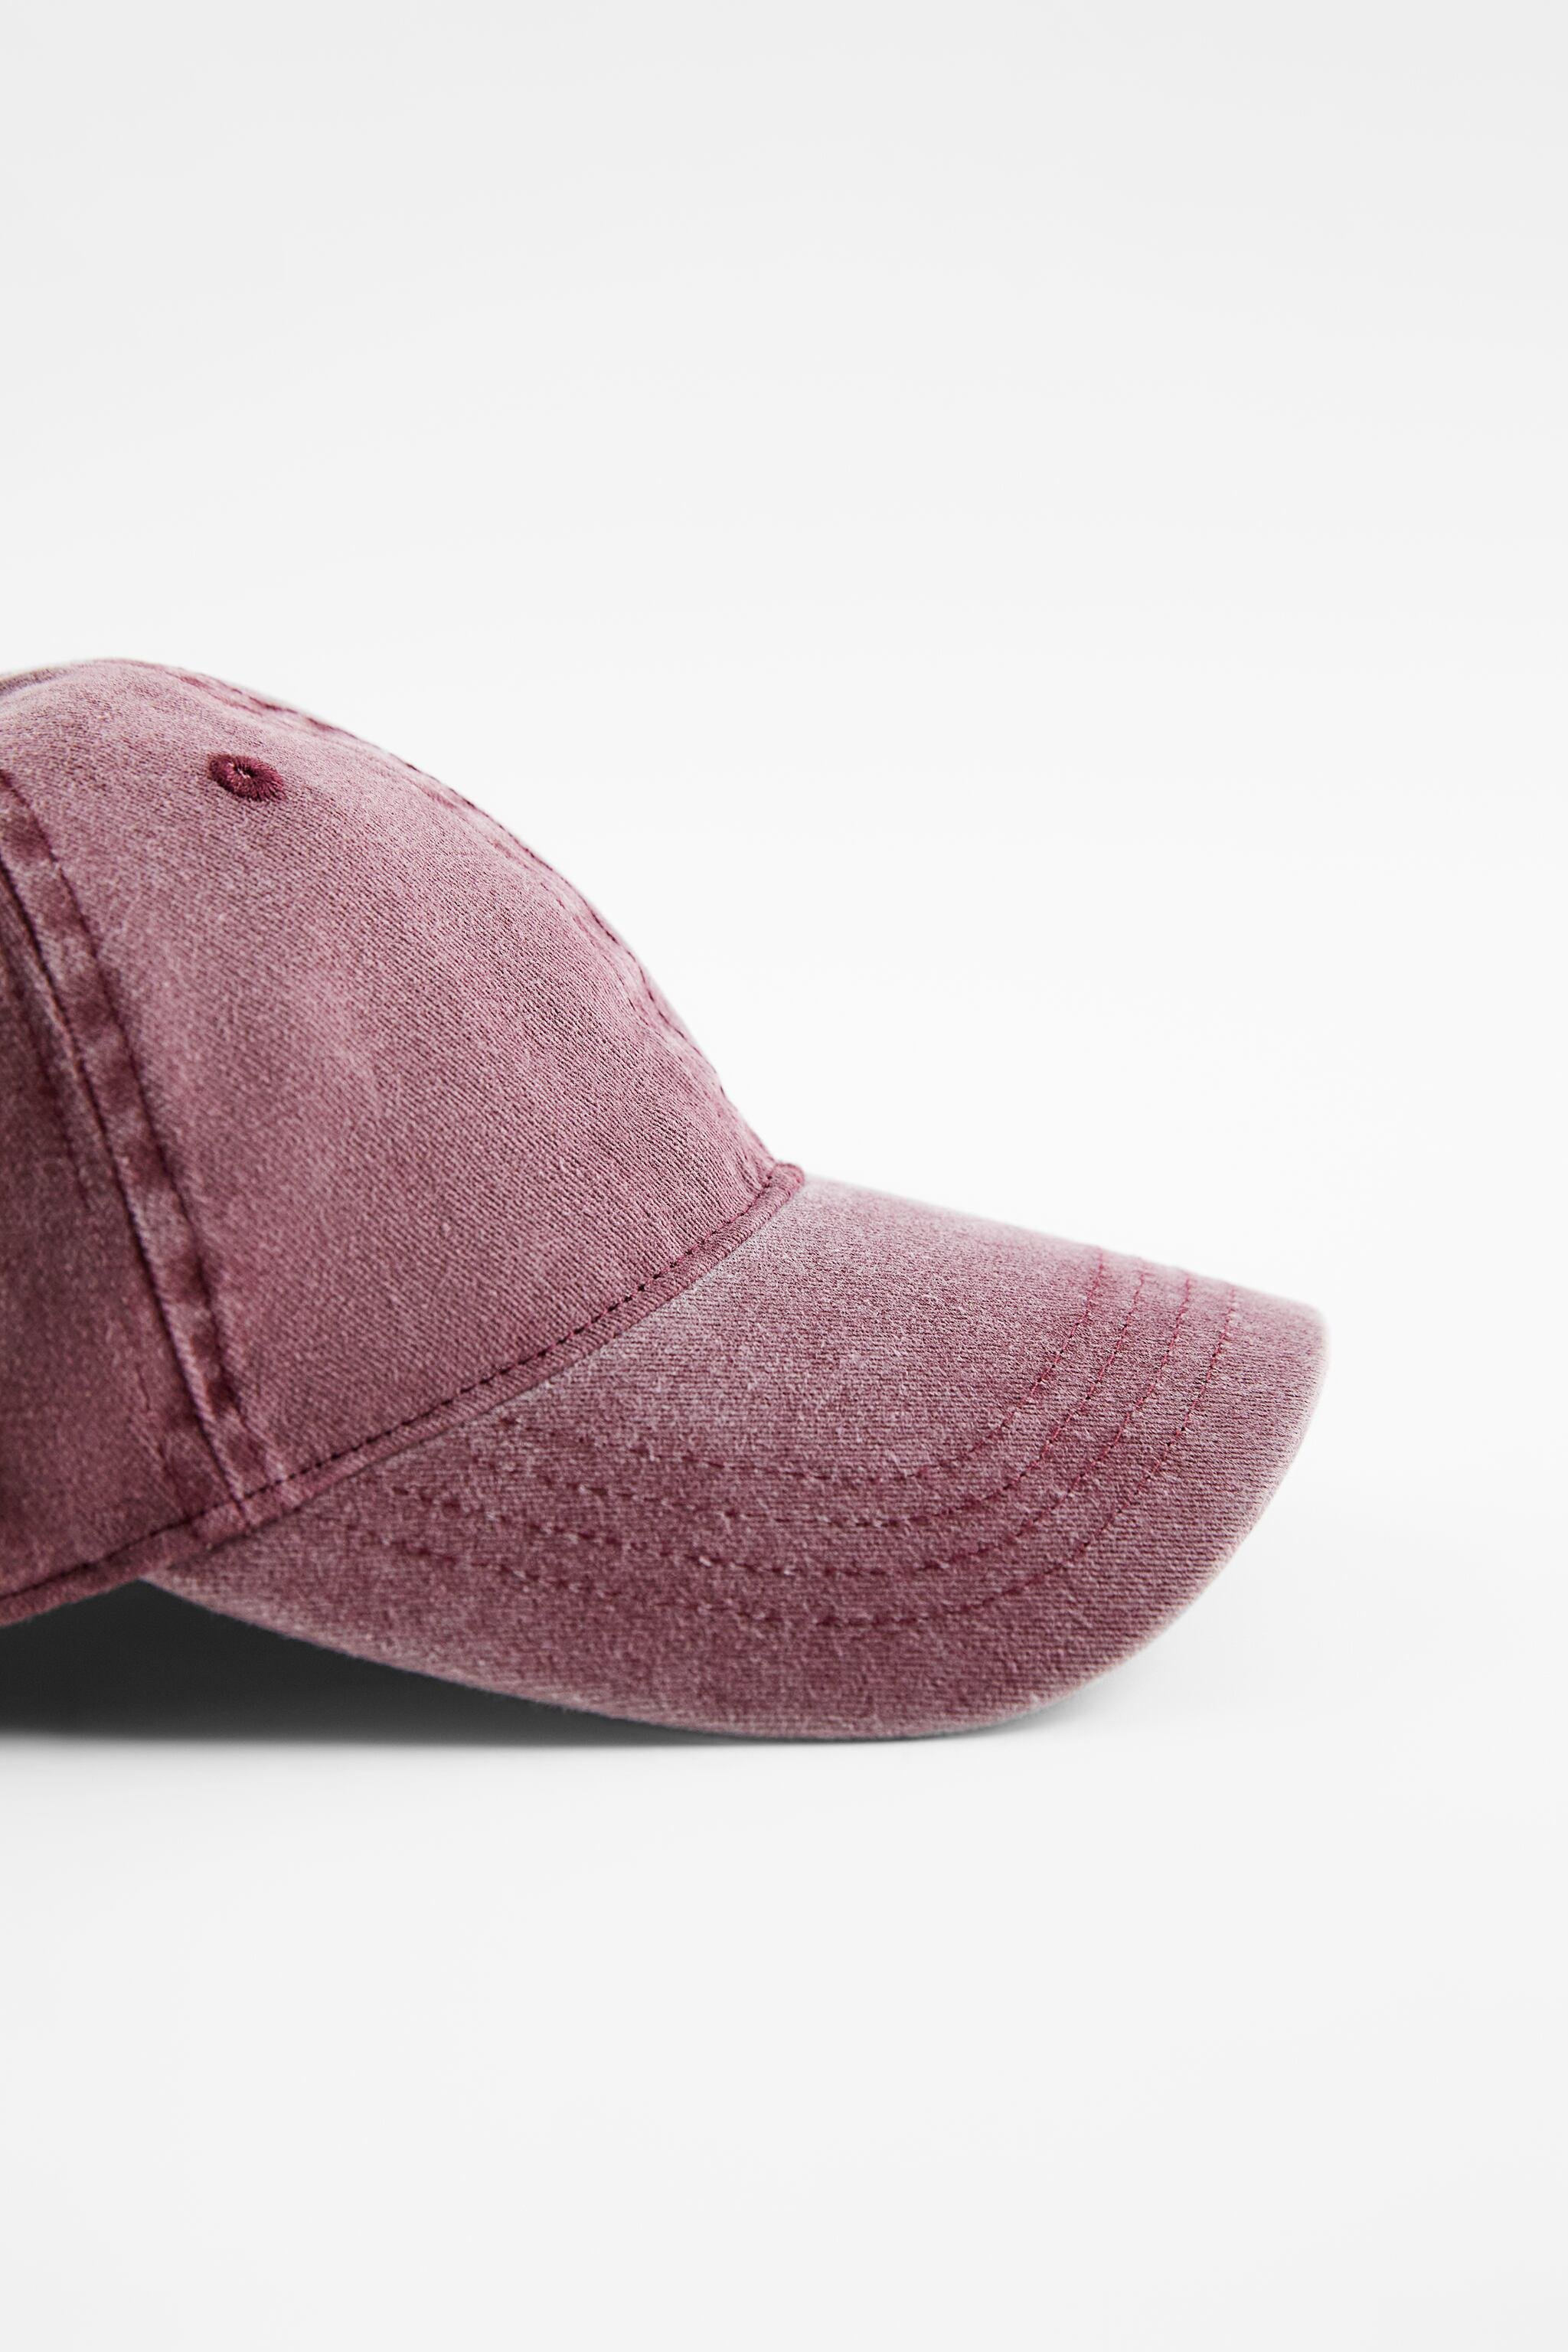 WASHED EFFECT HAT 4